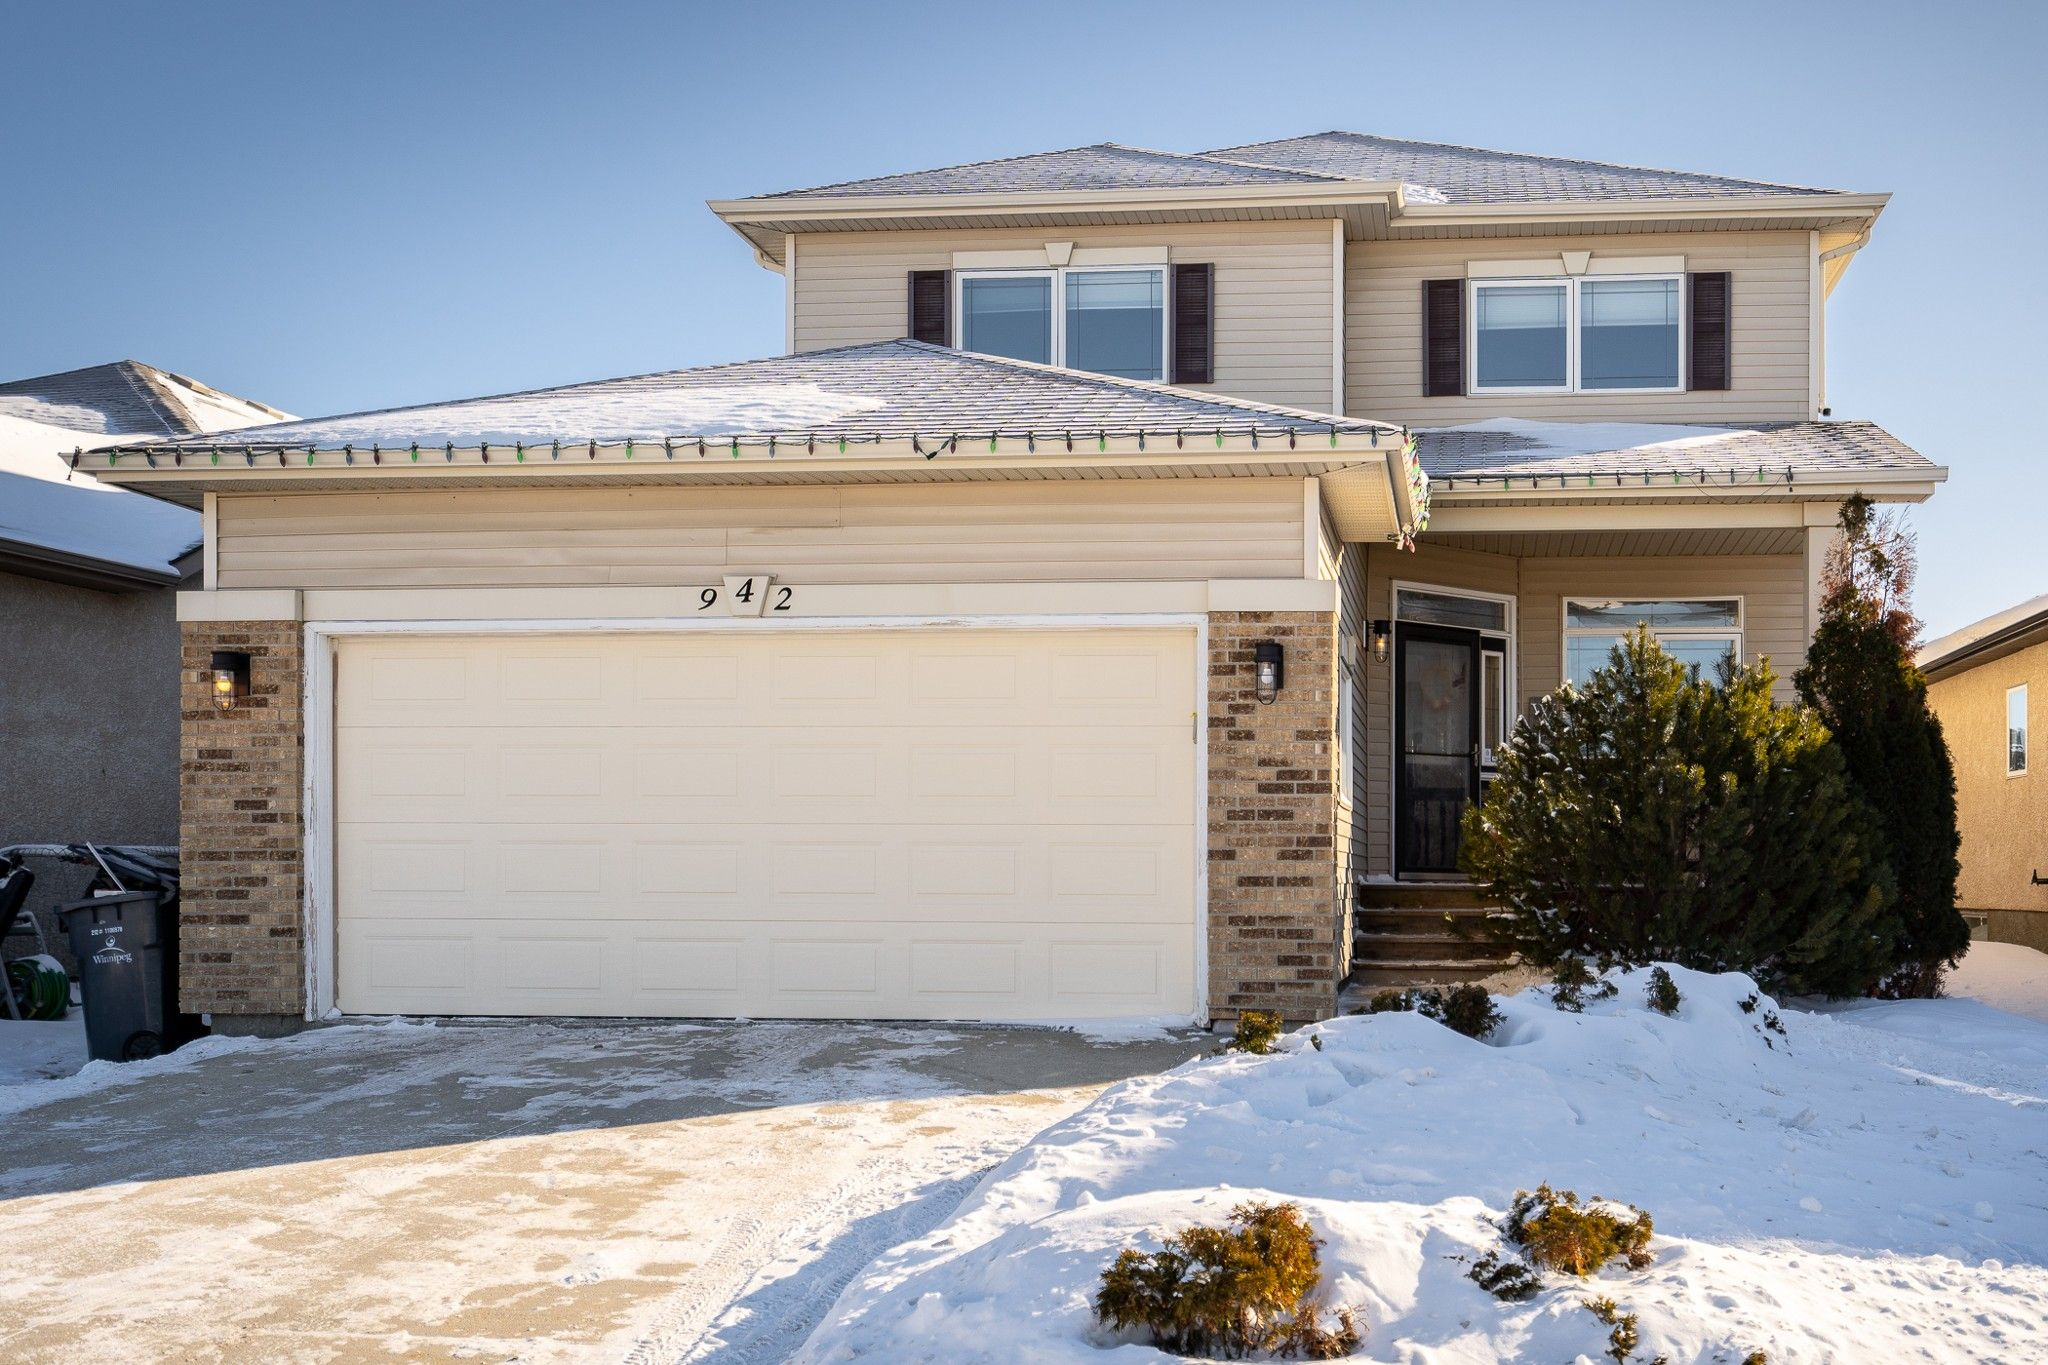 Main Photo: 942 Aldgate Road in Winnipeg: River Park South House for sale (2F)  : MLS®# 202102931